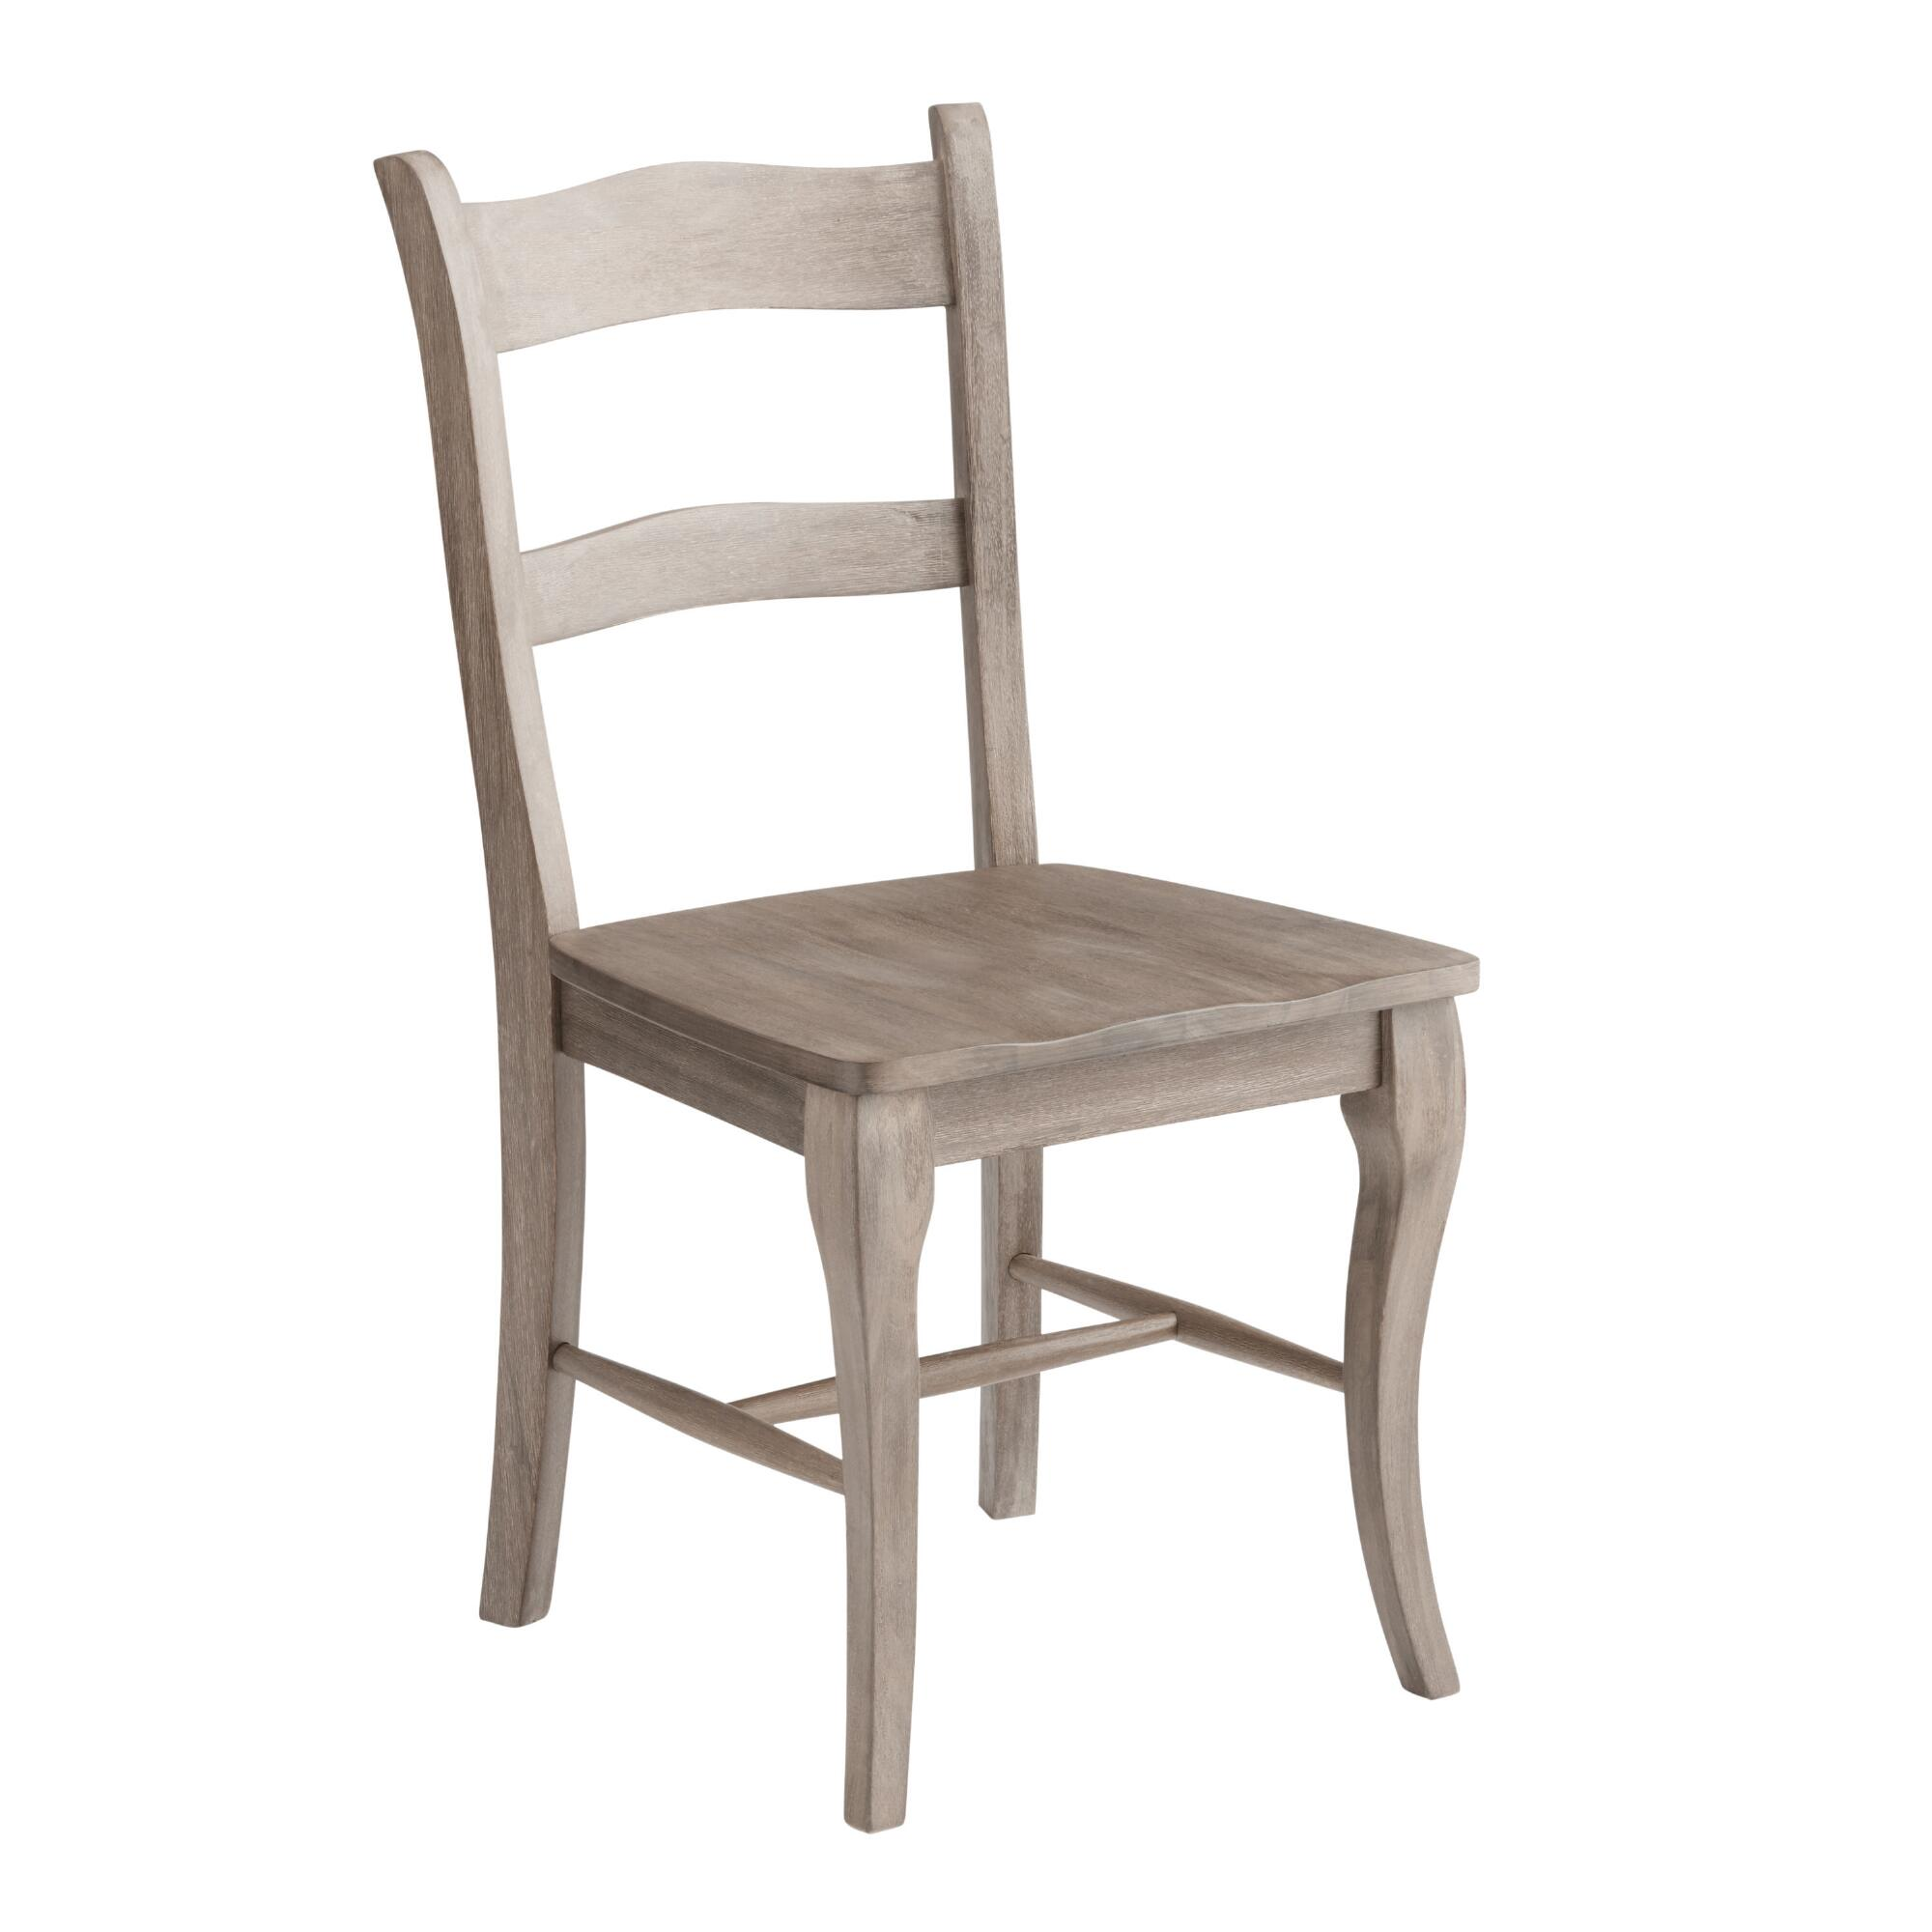 Weathered gray wood jozy dining chairs set of 2 world market for Wood dining room furniture